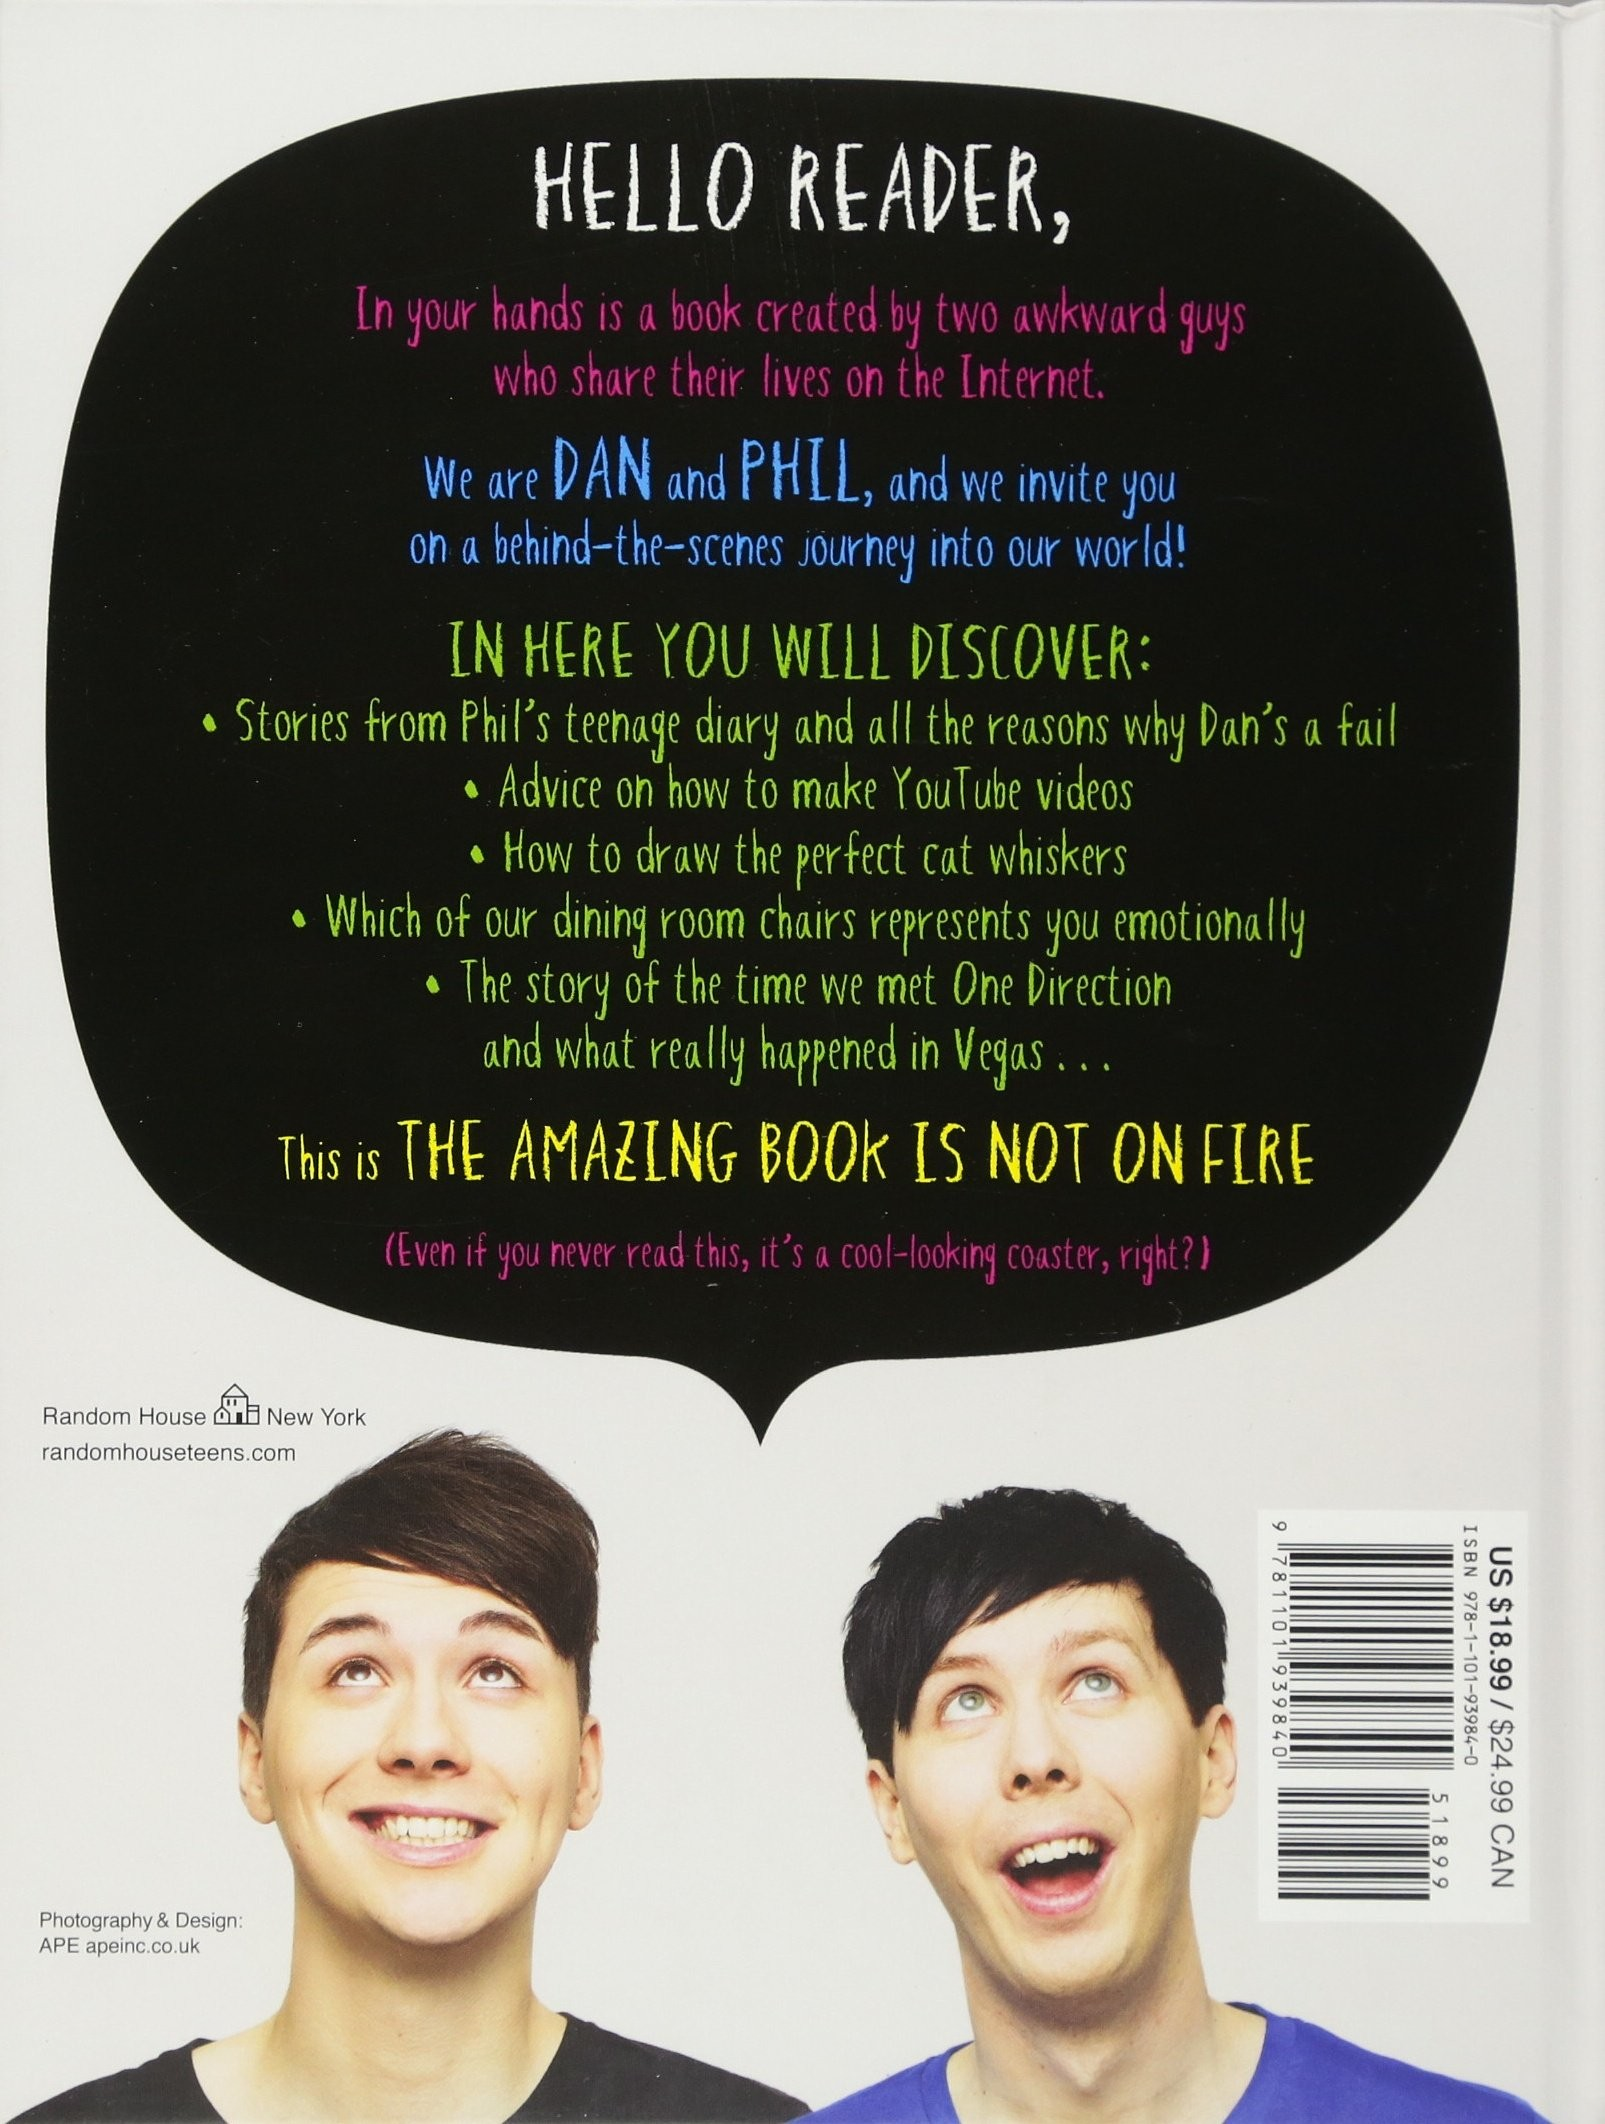 The Amazing Book Is Not On Fire - Aesthetic Dan And Phil Desktop - HD Wallpaper